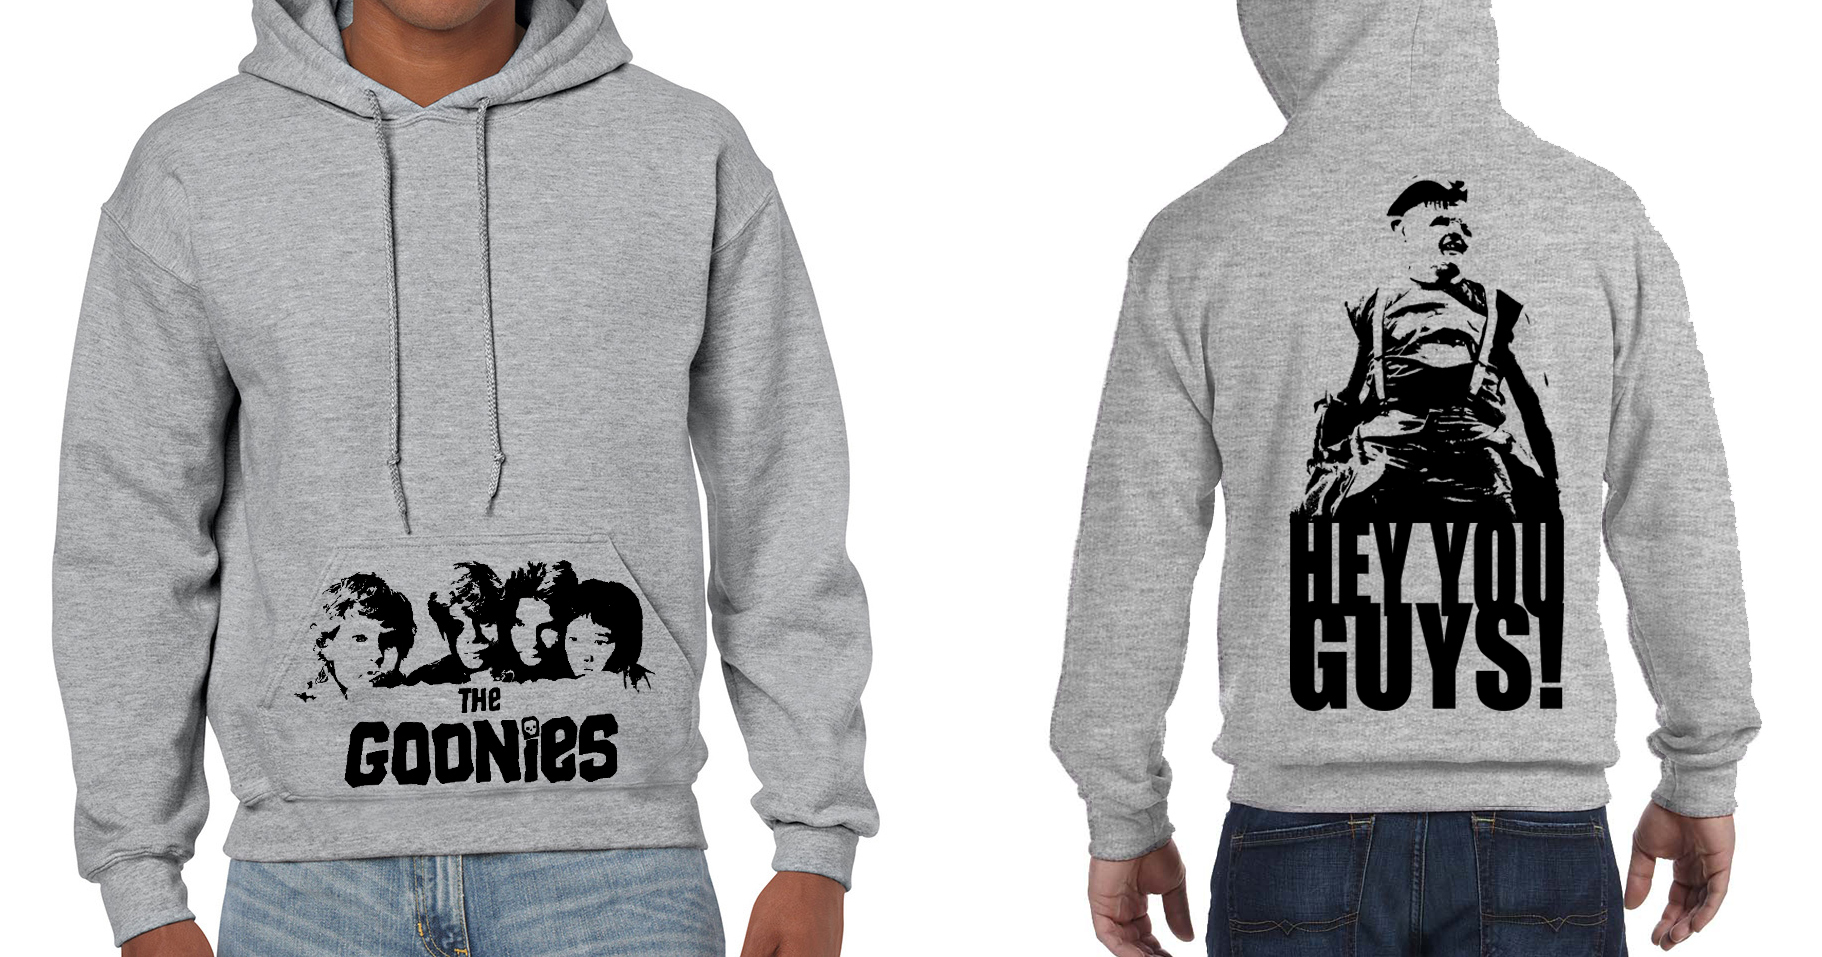 The Goonies (Spielberg) Hey you guys! - Mens Grey Hoodie